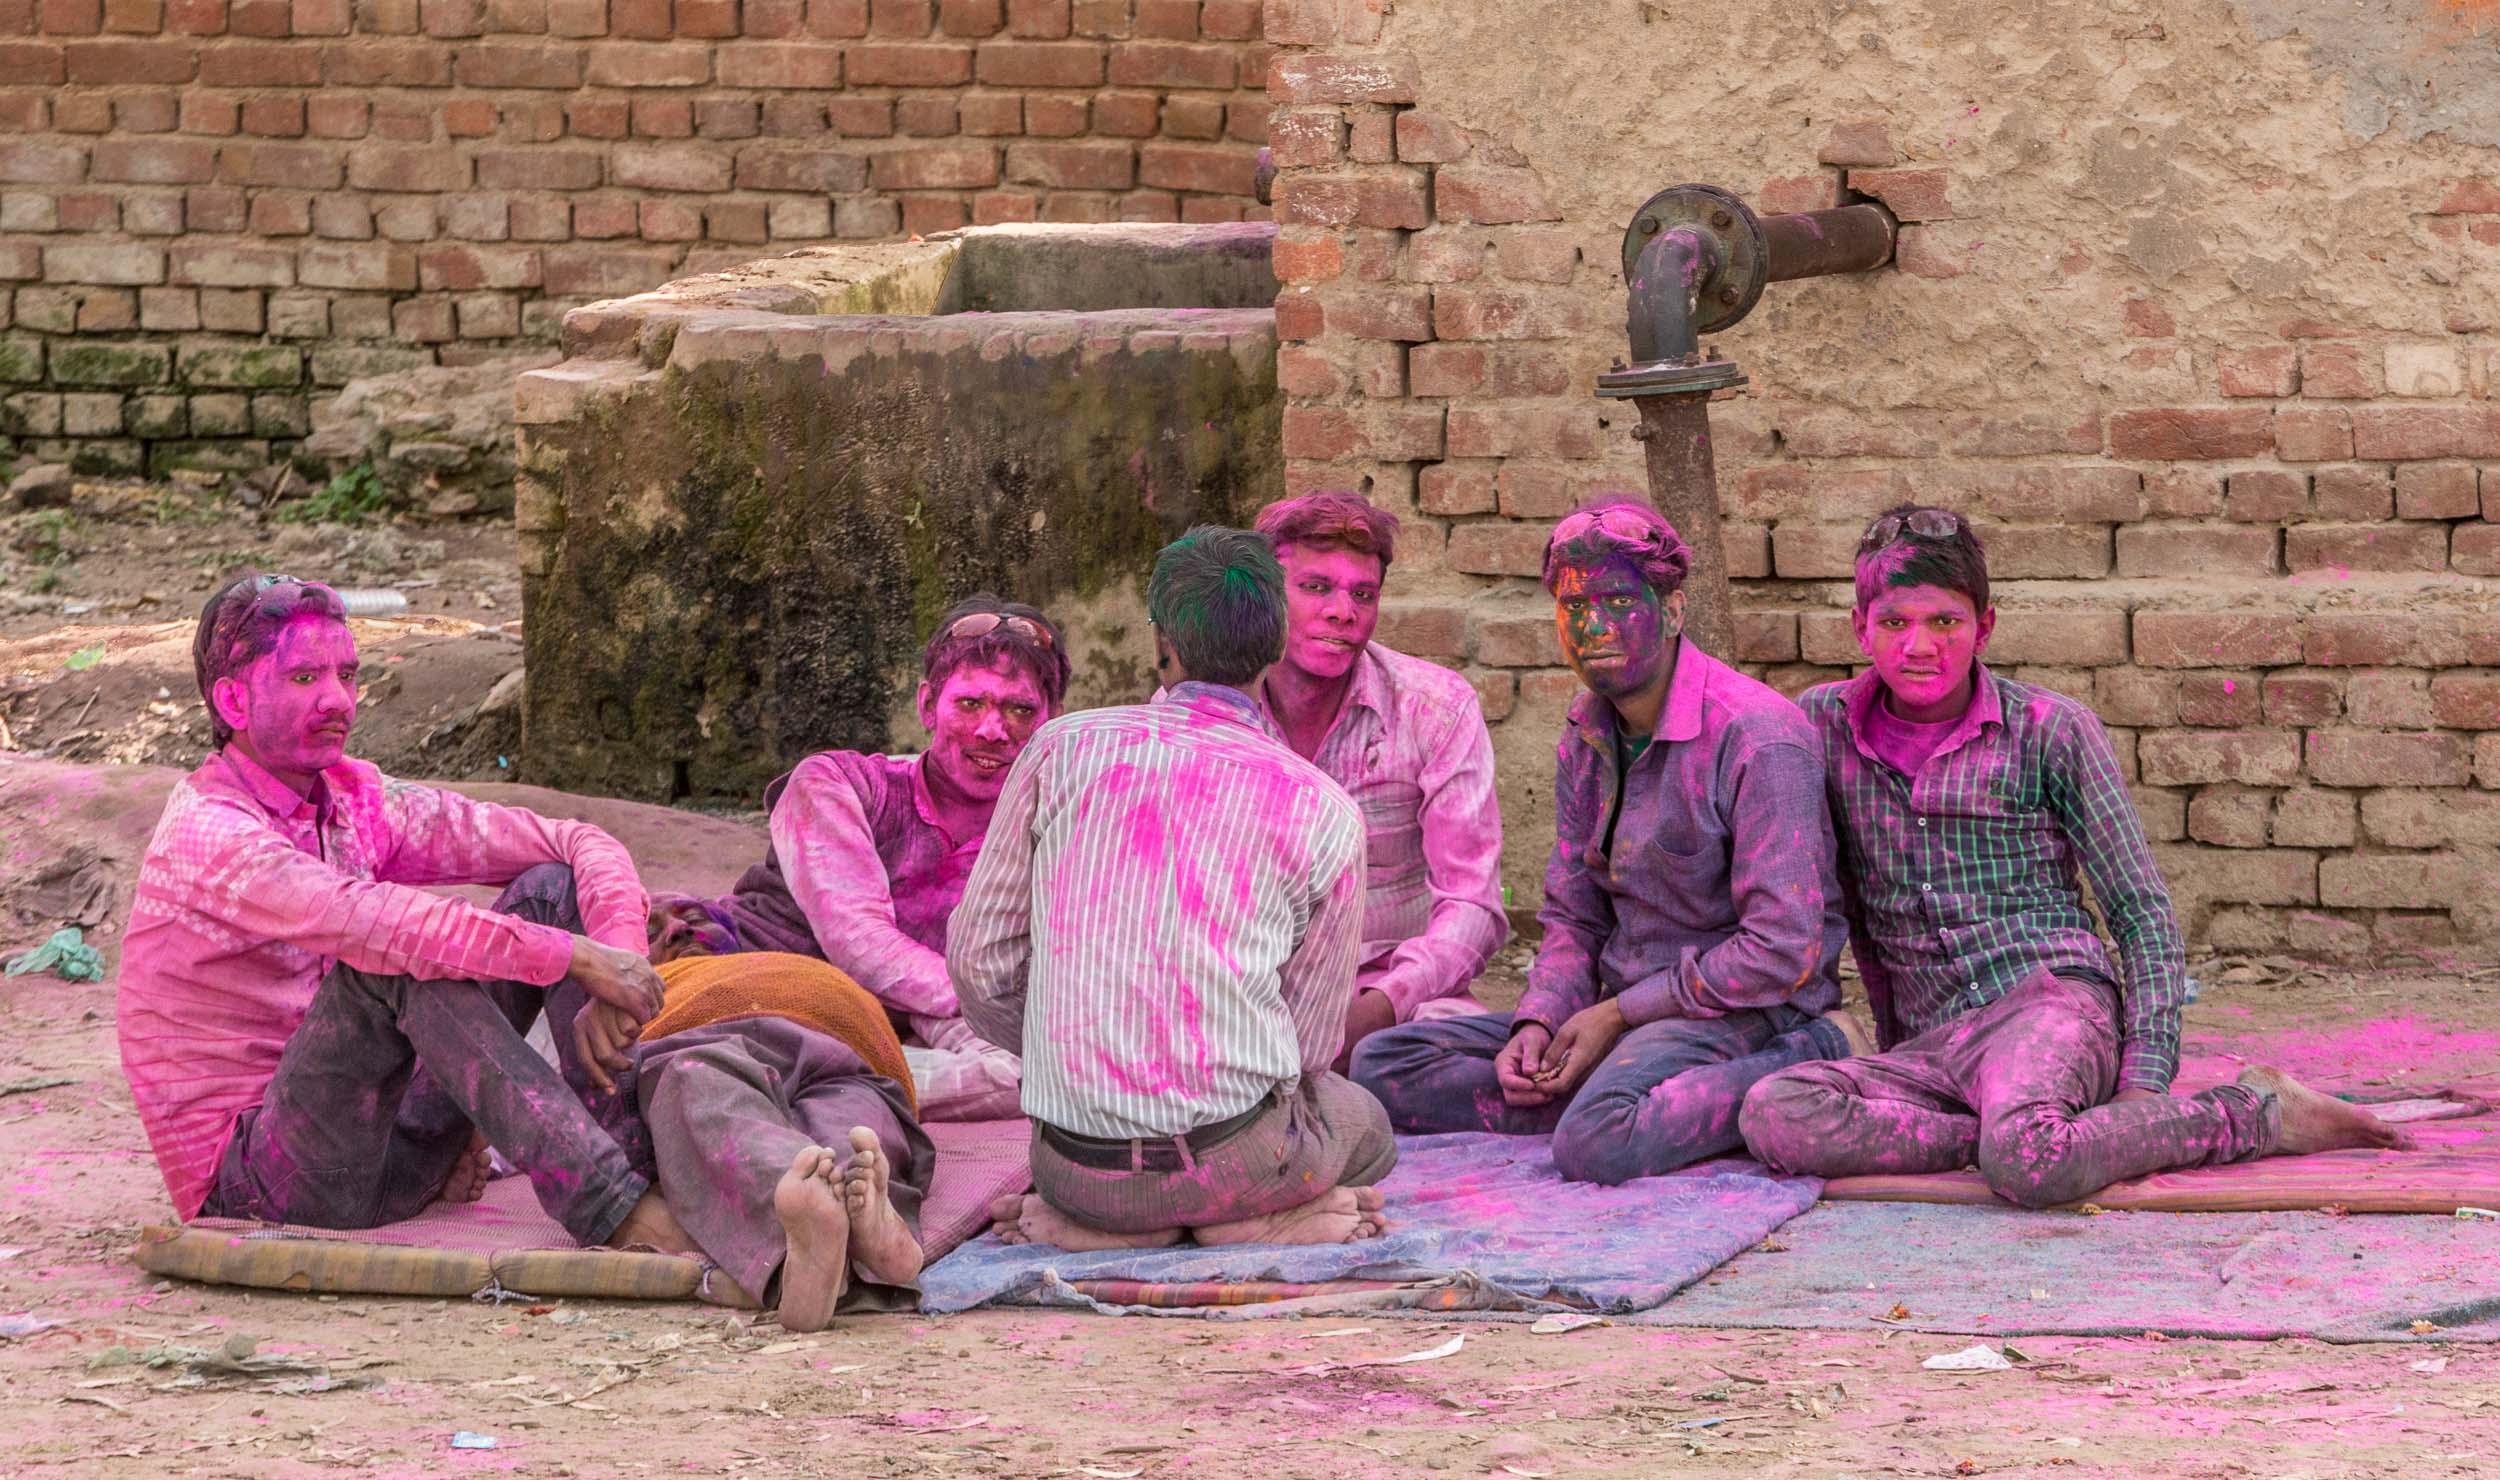 India-Barsana-Six-Pink-Men